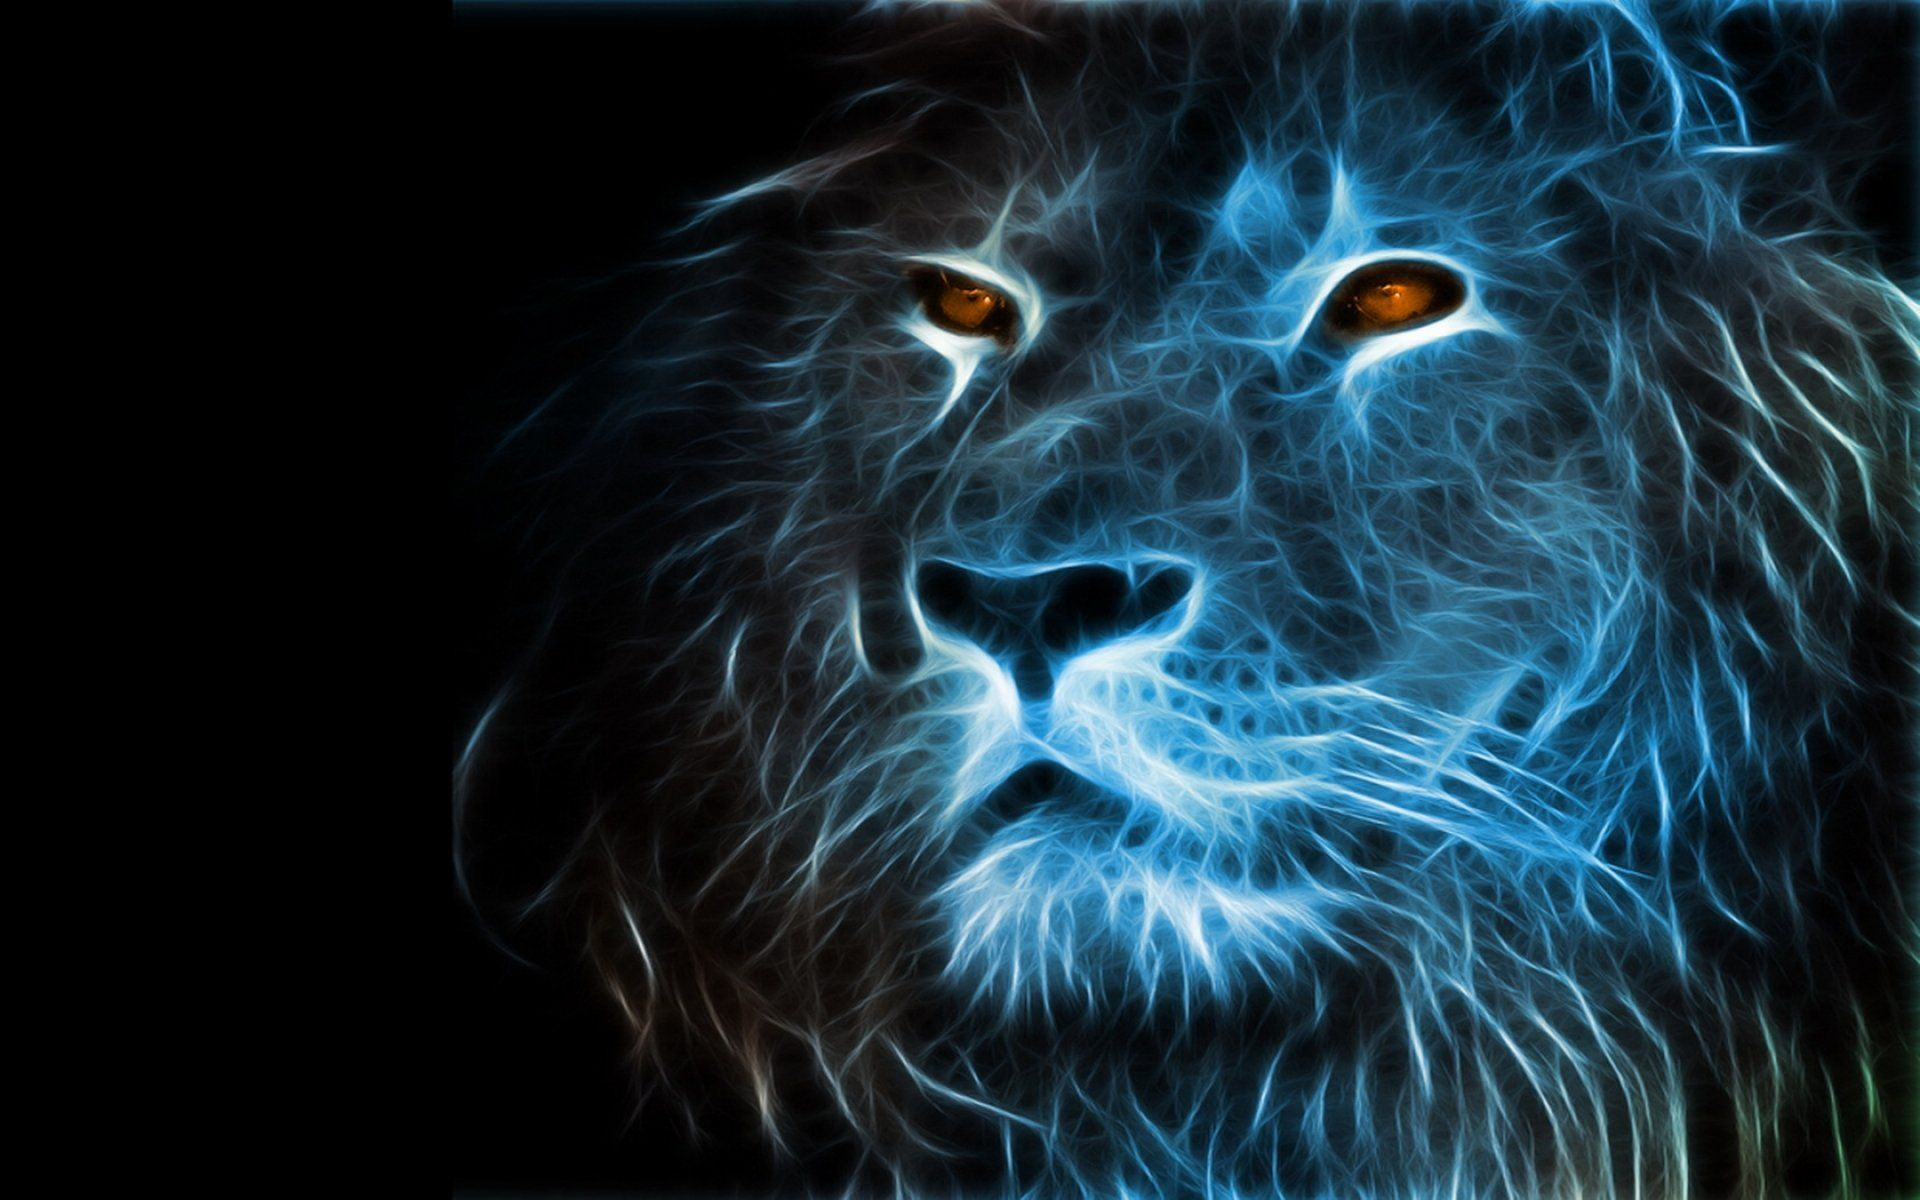 1920x1200 Abstract Lion Wallpaper (50+), Find HD Wallpapers For Free